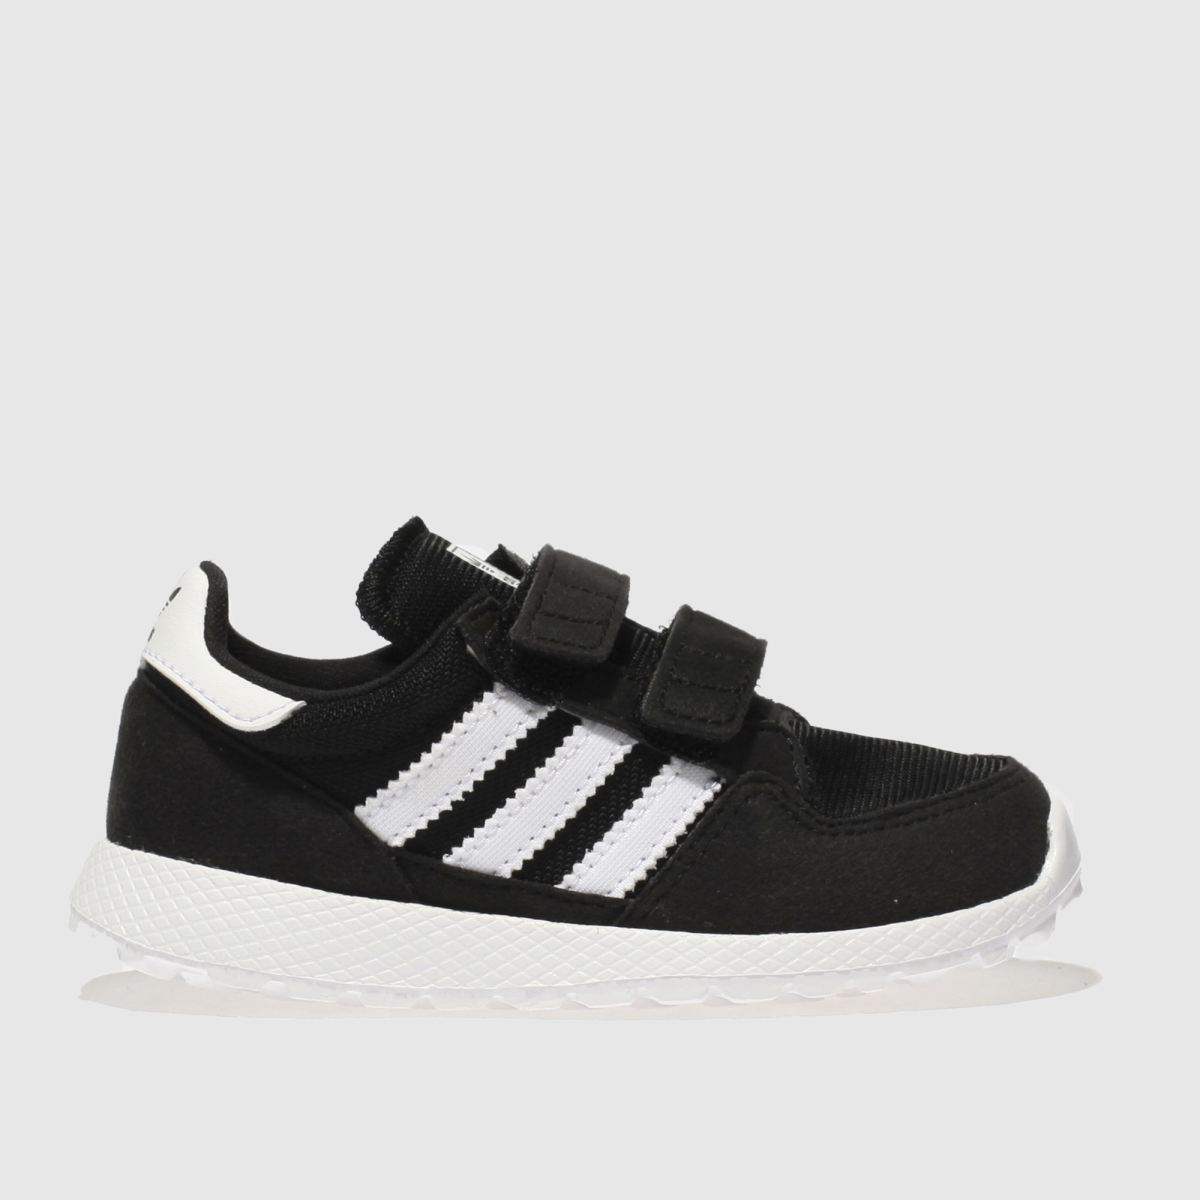 Adidas Black & White Forest Grove Unisex Toddler Toddler